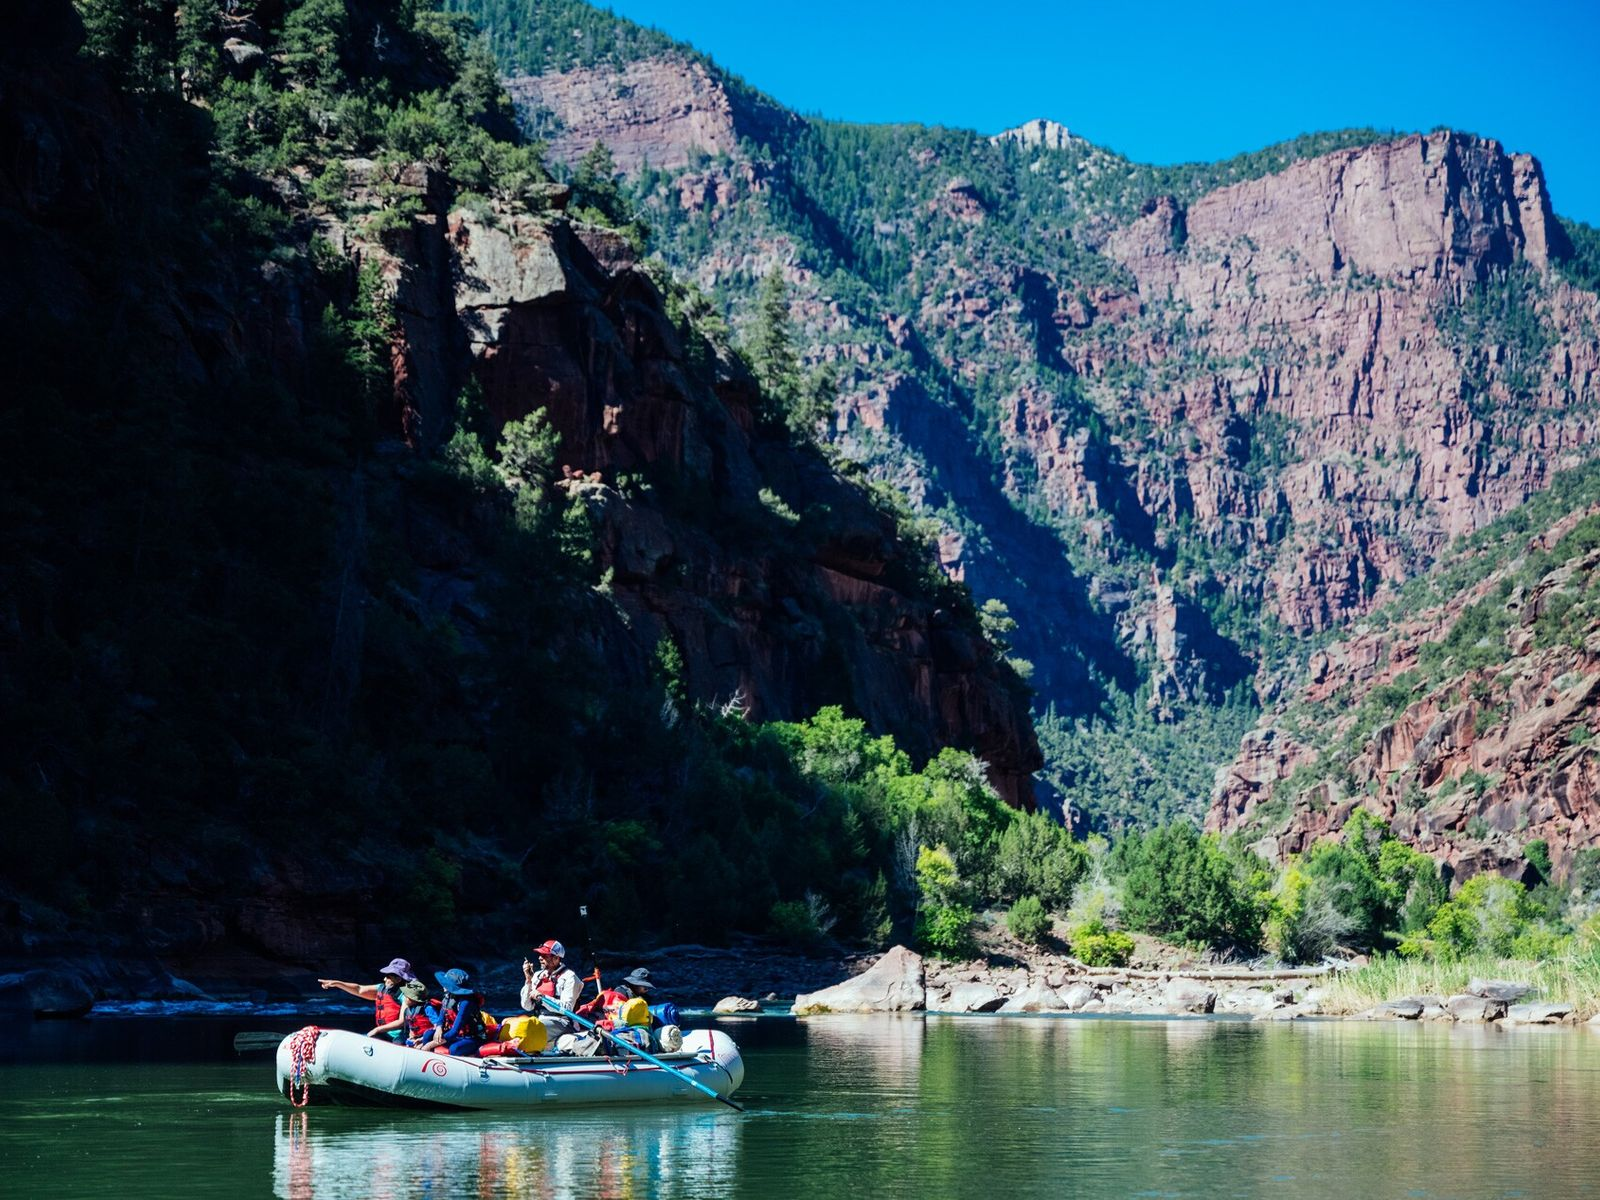 Flaming Gorge National Recreation Area offersa natural playground of fiery, russet-coloured canyons. For an exhilarating brush ...